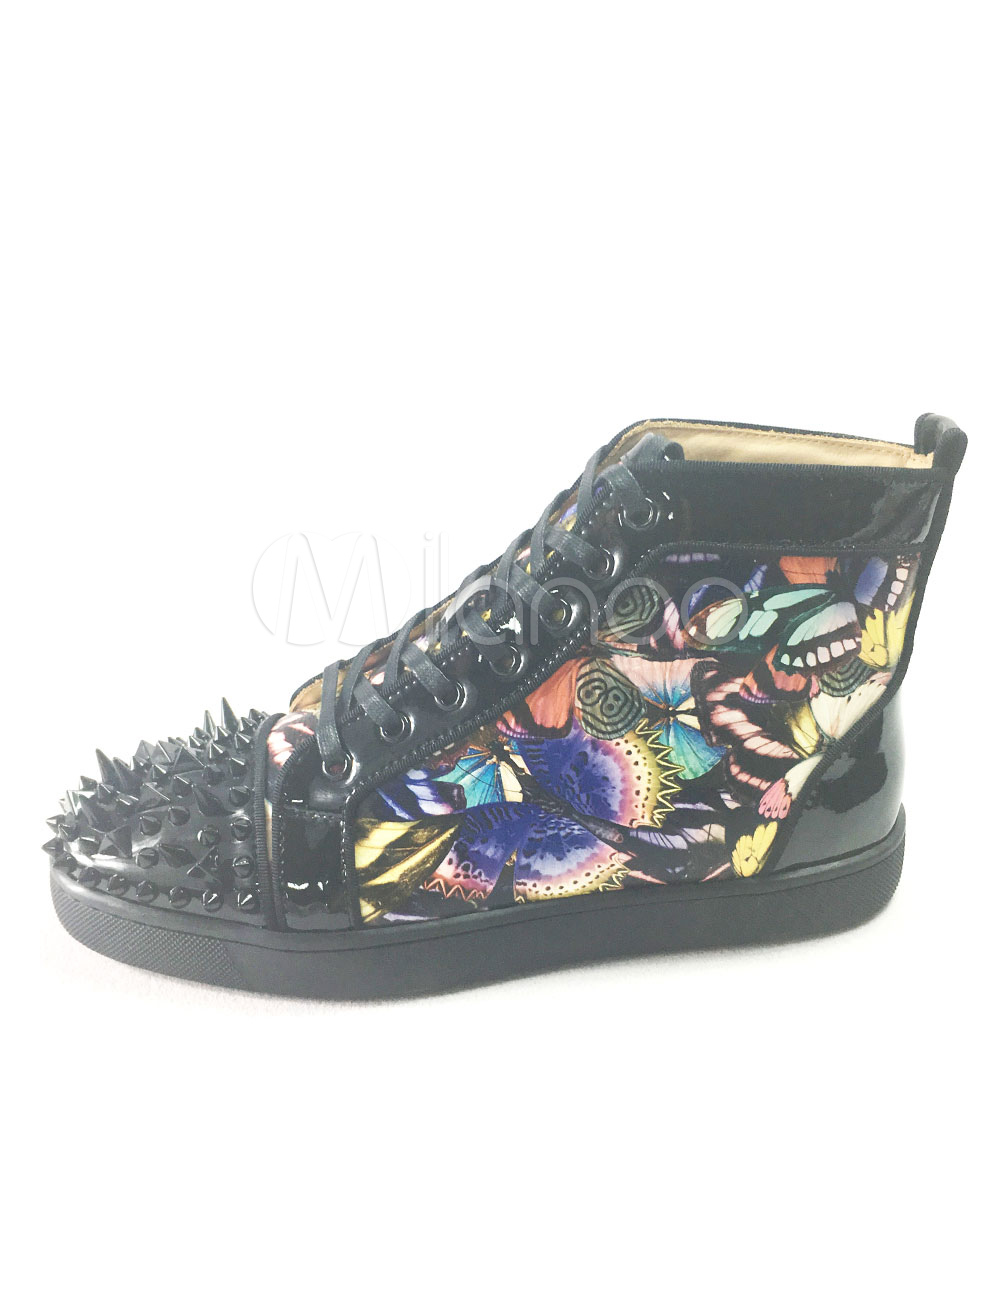 Buy Men's Black Sneakers Leather Round Toe Rivets Lace Up Printed Spike Shoes for $107.99 in Milanoo store